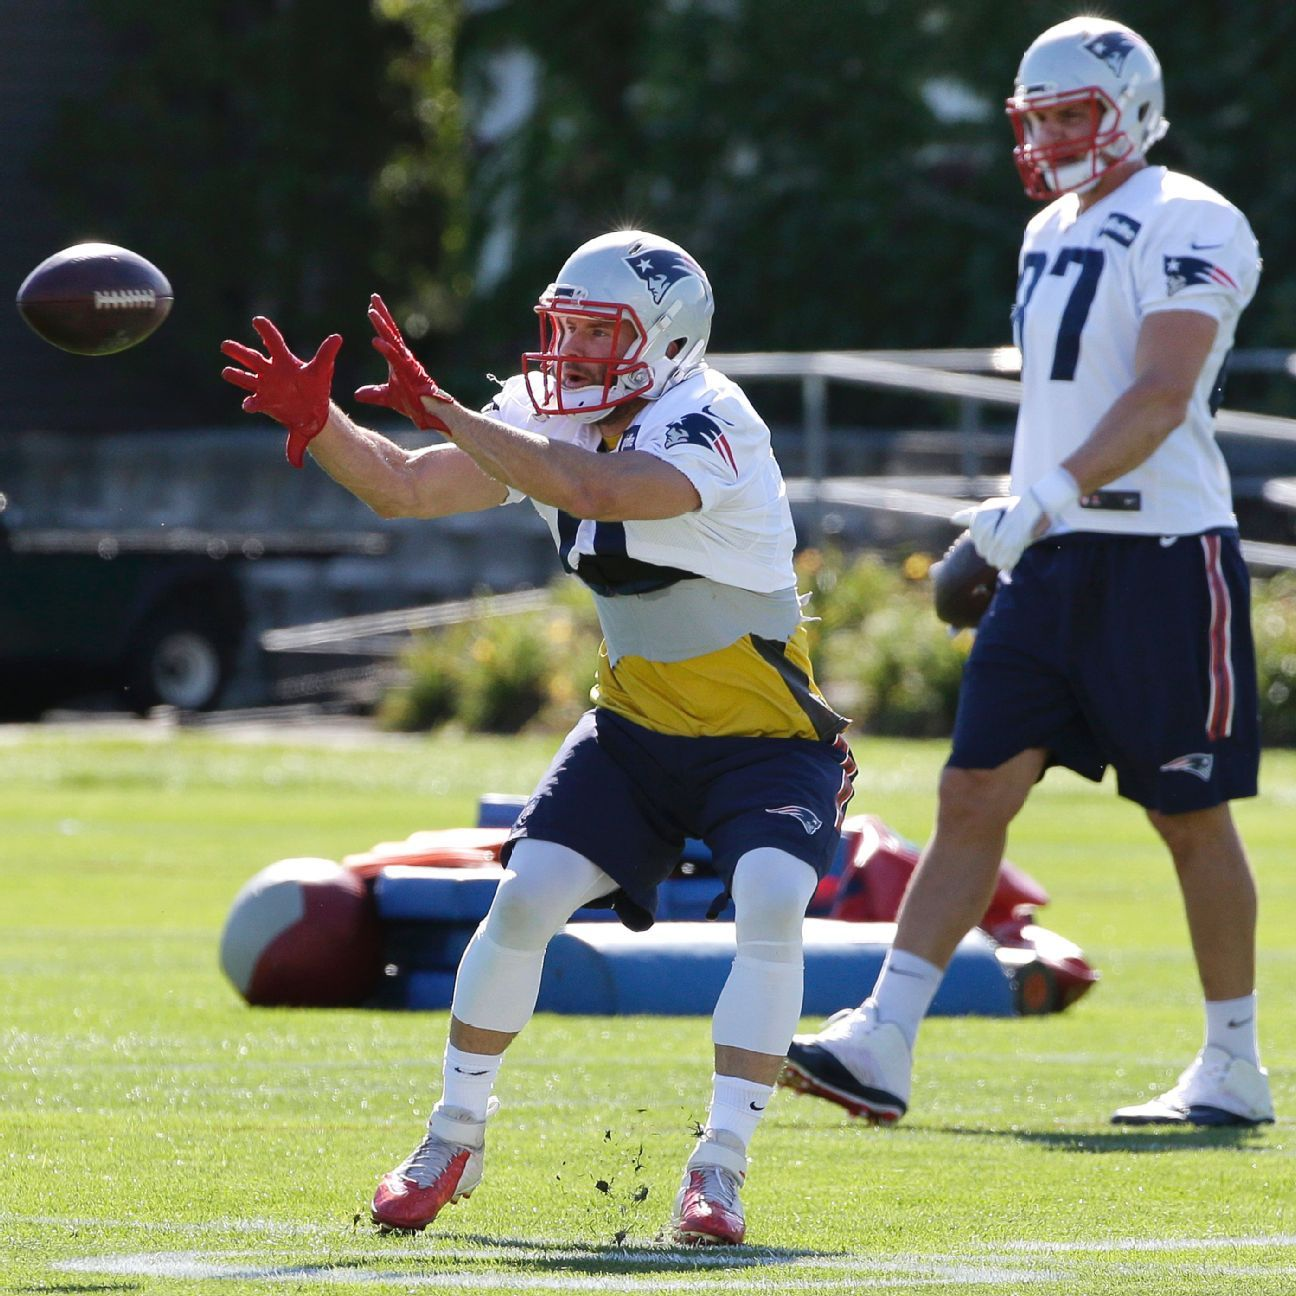 New England Patriots Wide Receiver Julian Edelman To Play Versus Indianapolis Colts